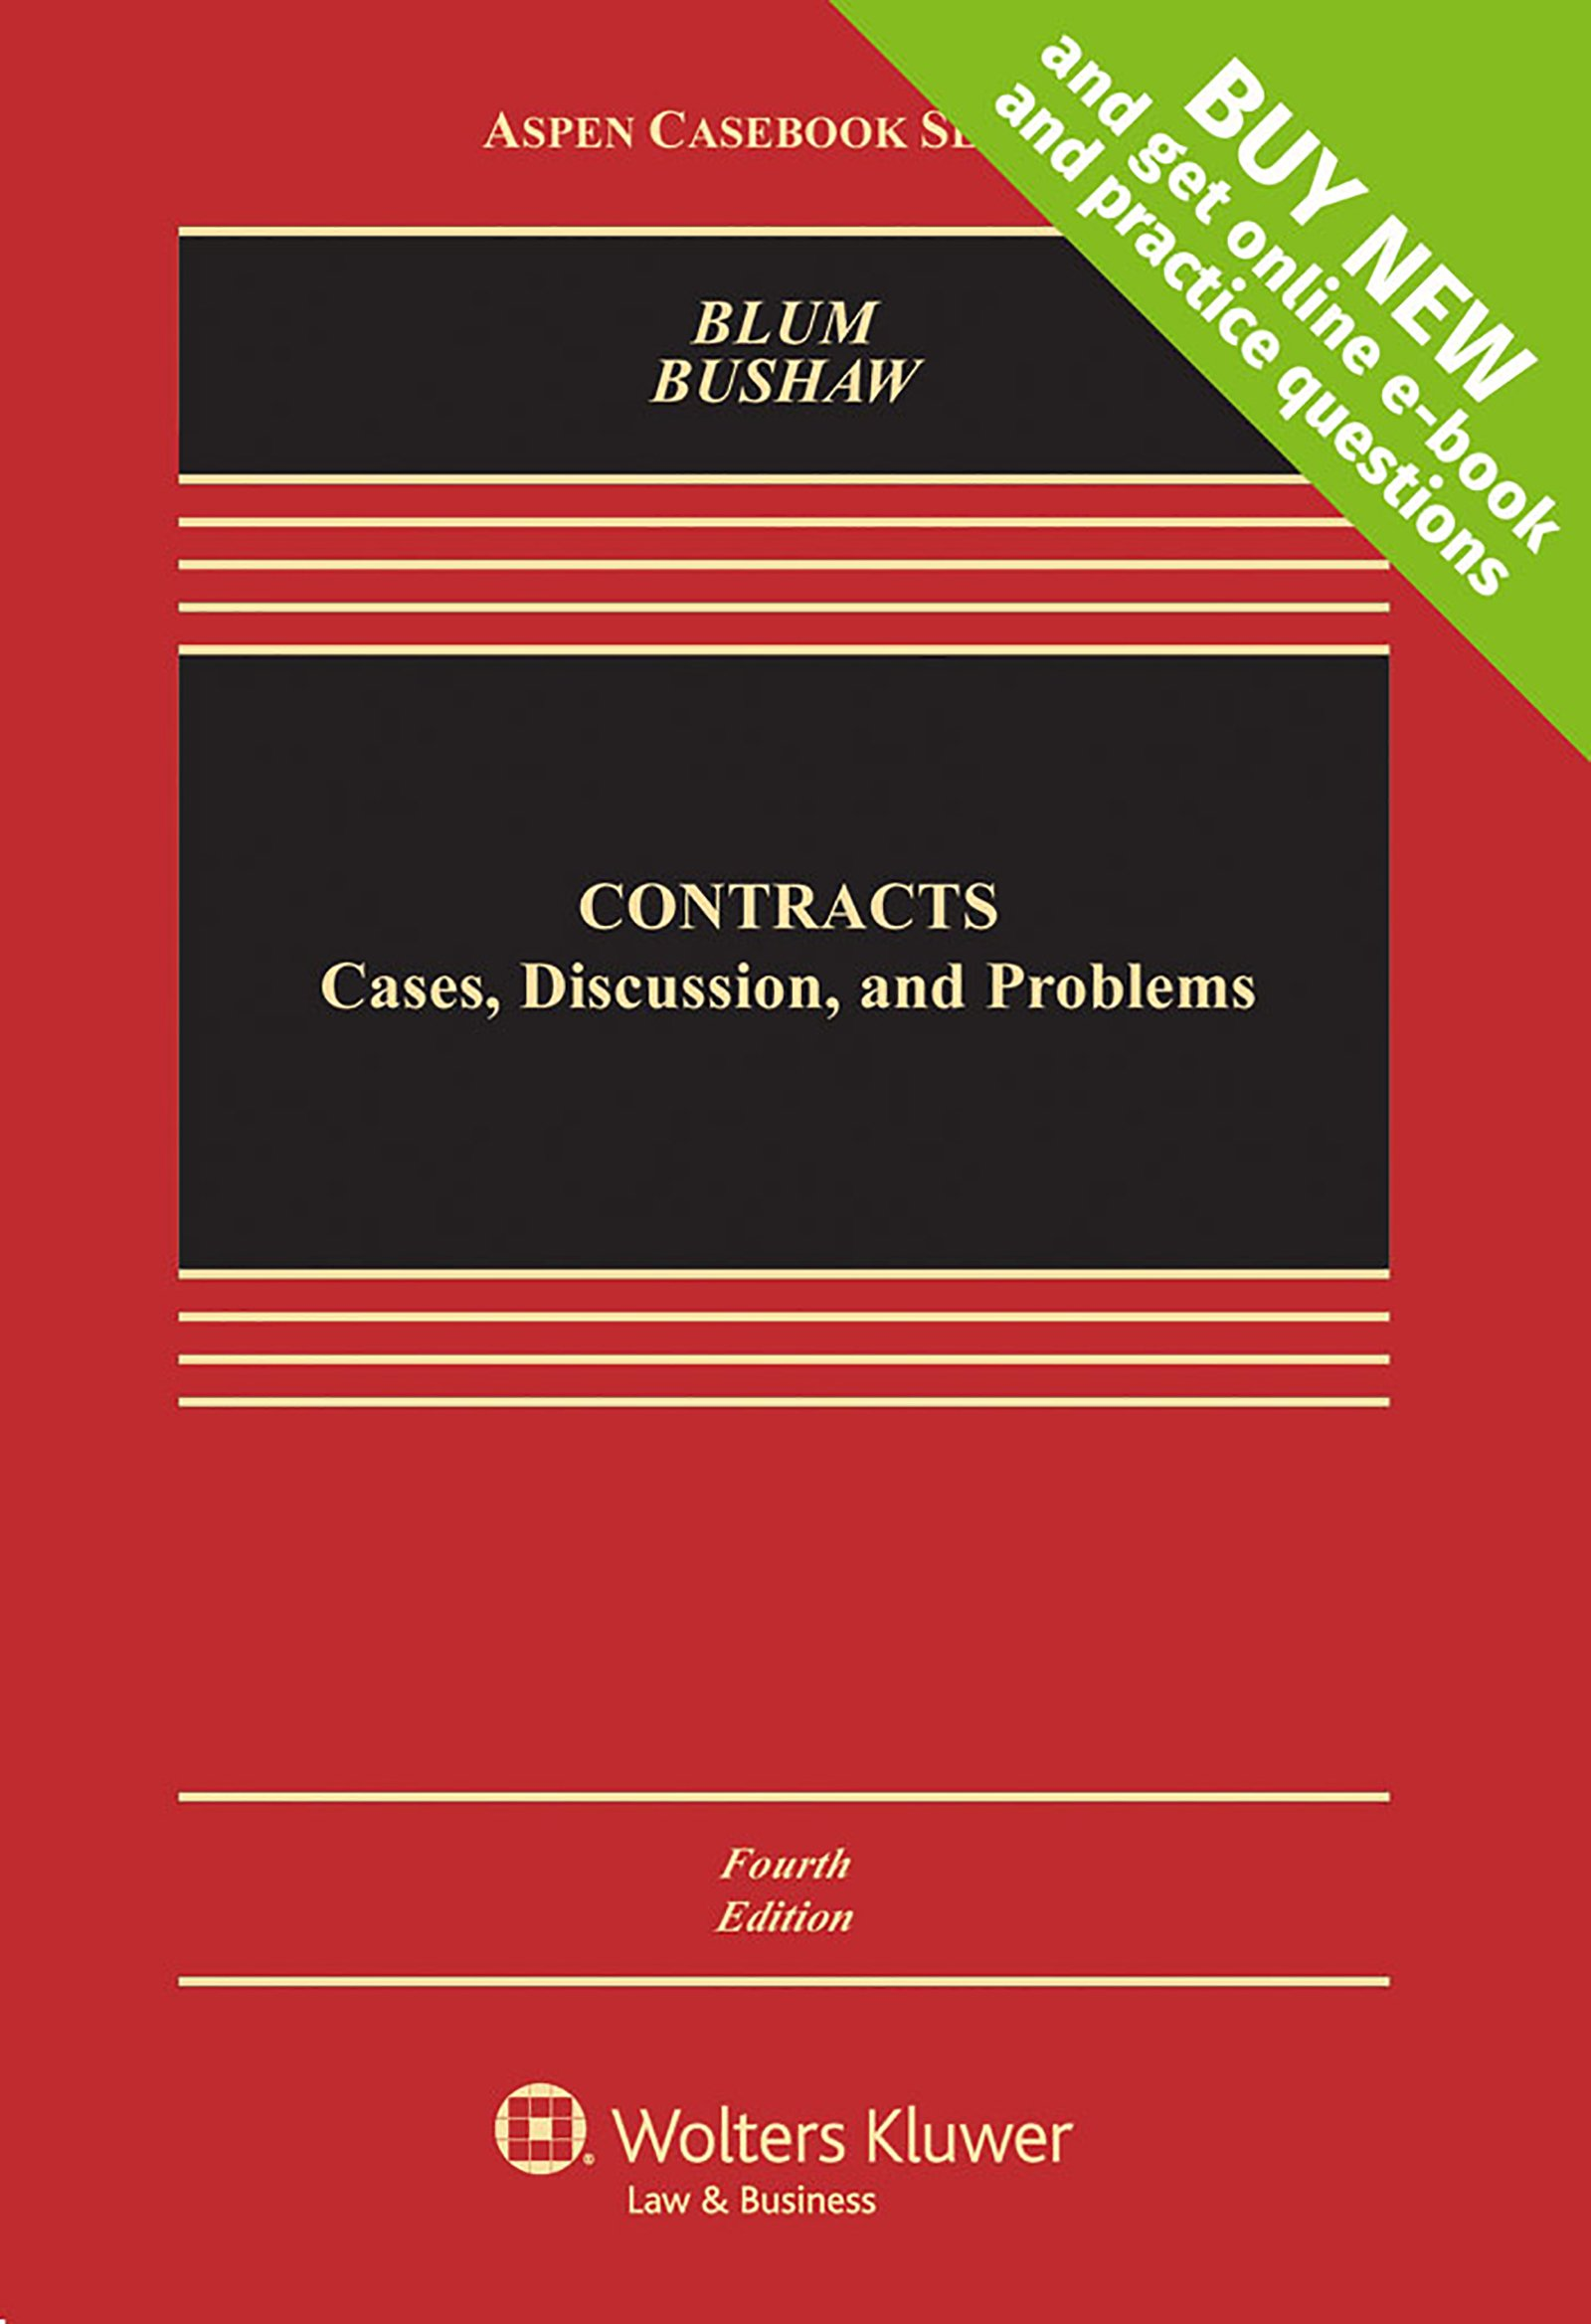 Contracts: Cases, Discussion, and Problems [Connected Casebook] (Aspen Casebook) by Aspen Publishers